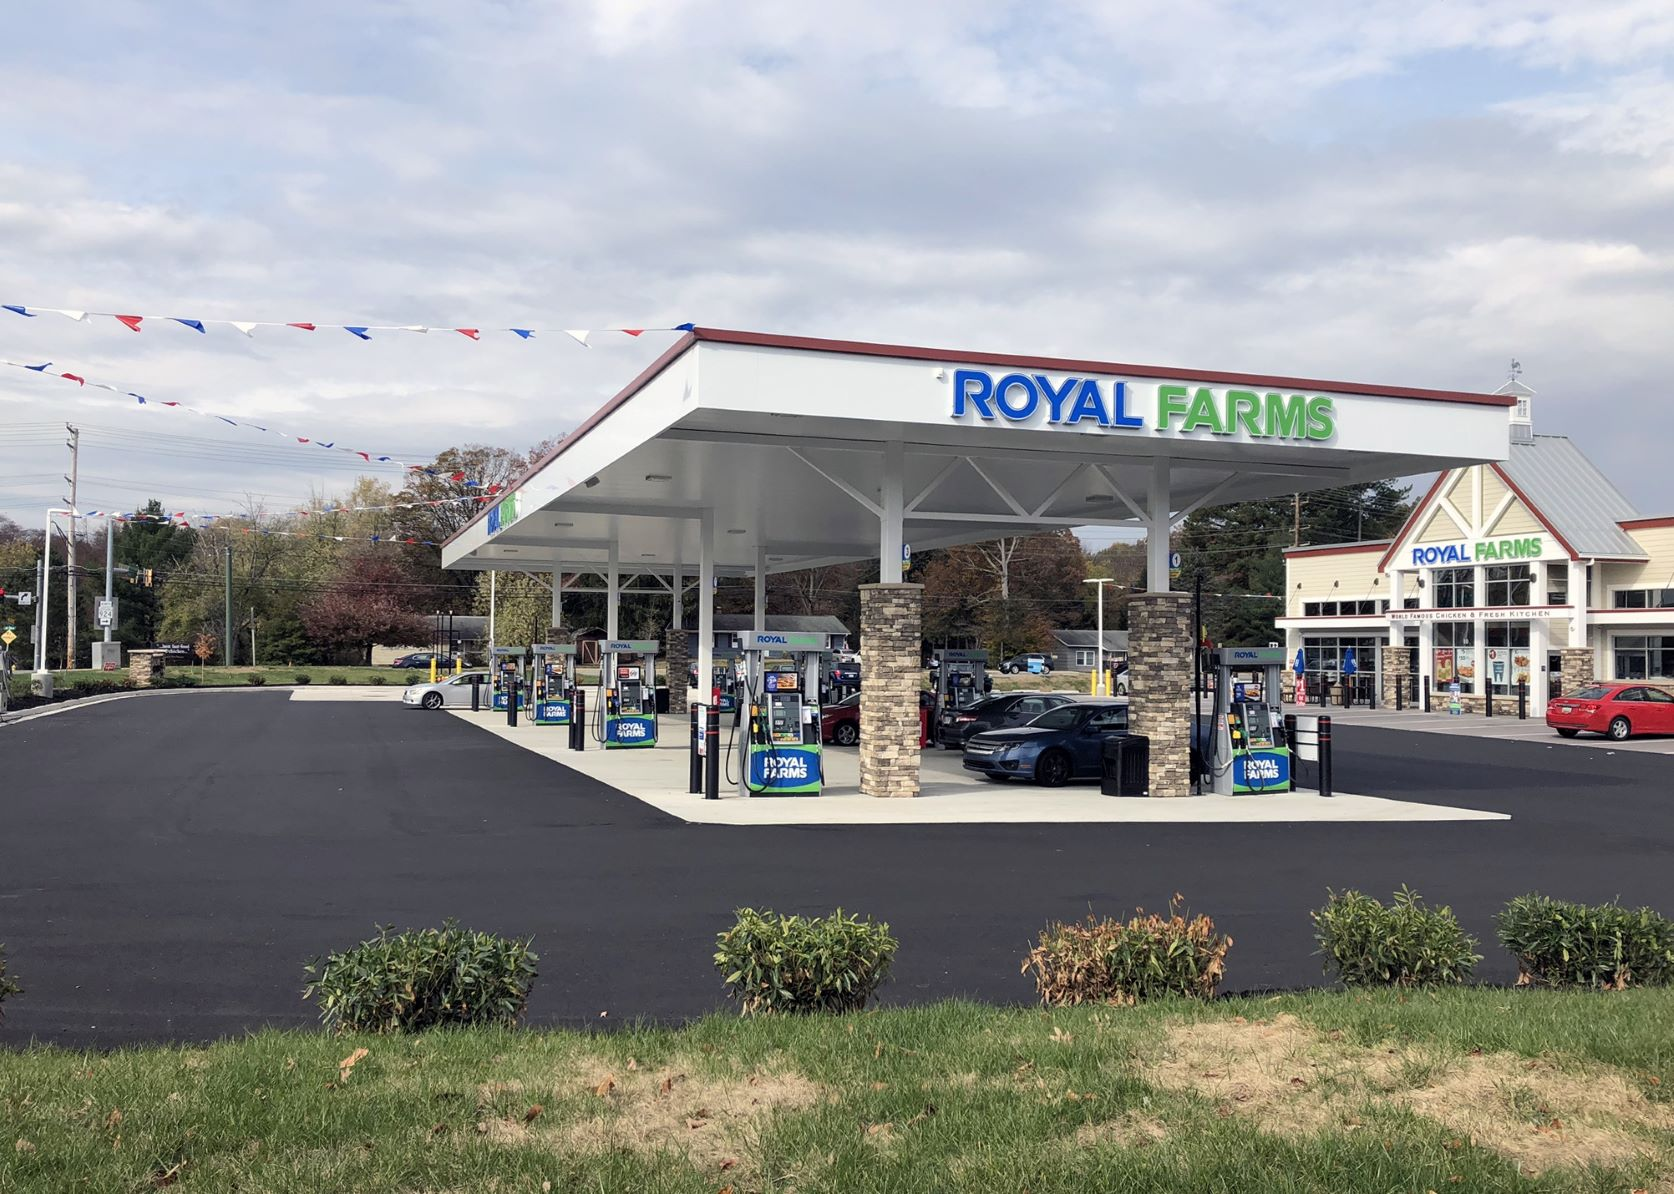 Royal Farms Box Hill South